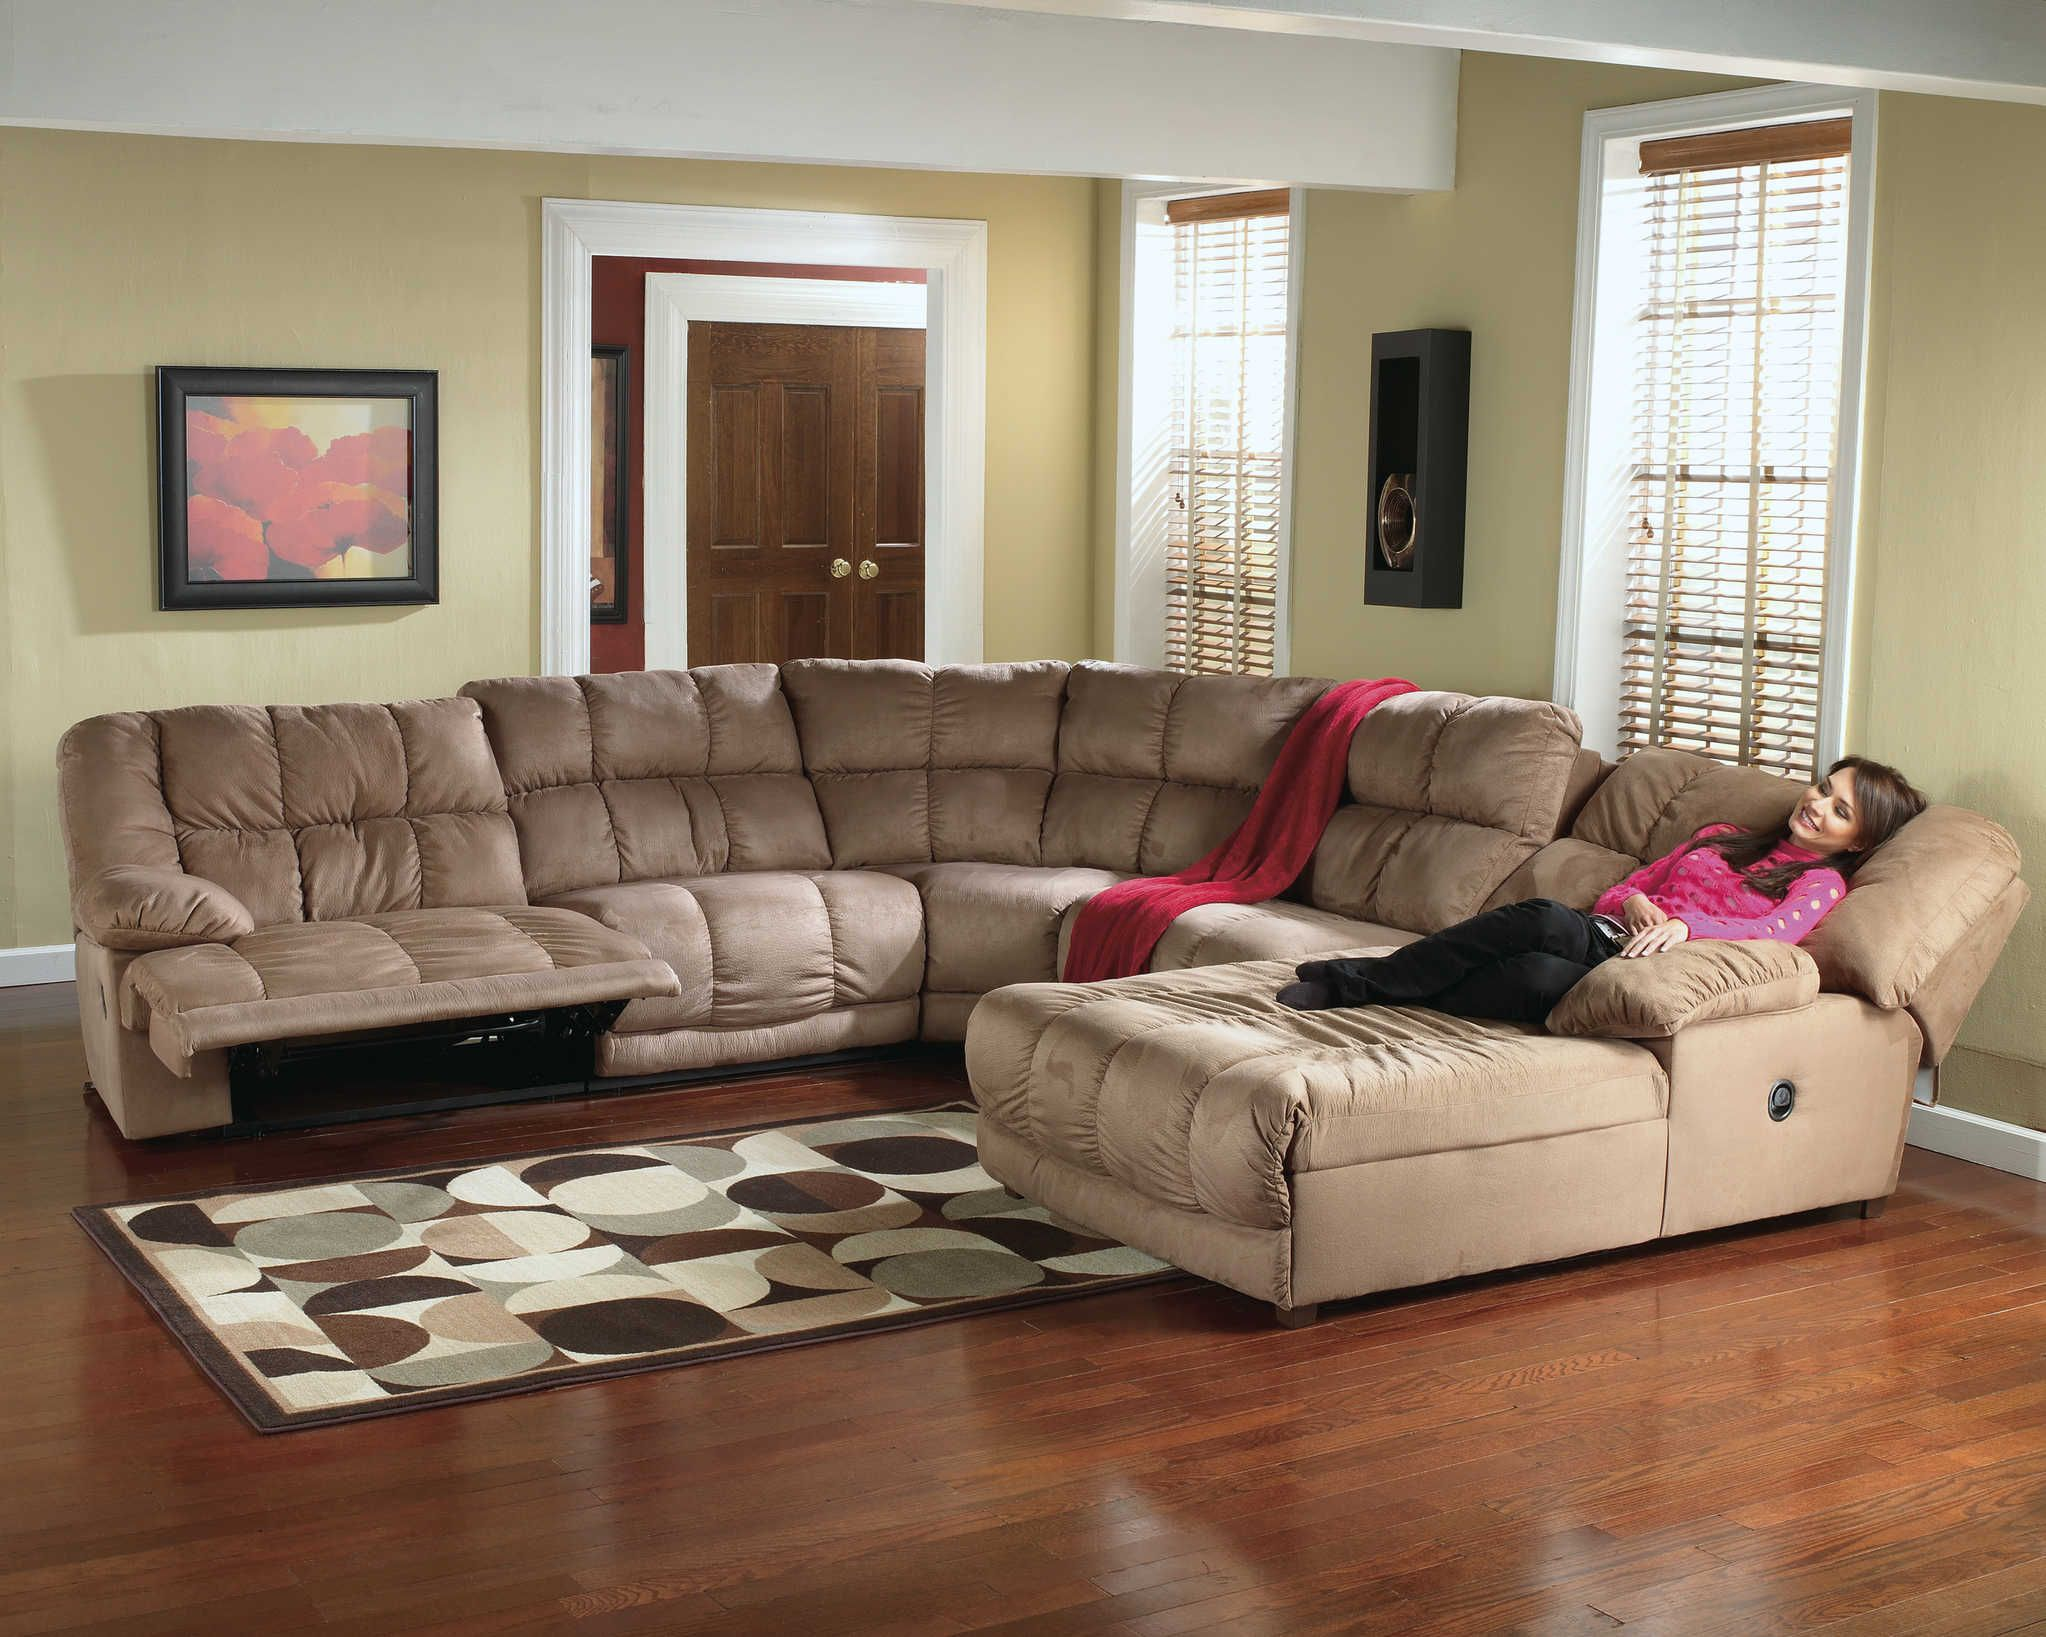 Amazing Microfiber Recliner Sectional | Sectional Sofa | Recliner Chaise 260. Living  Room ...